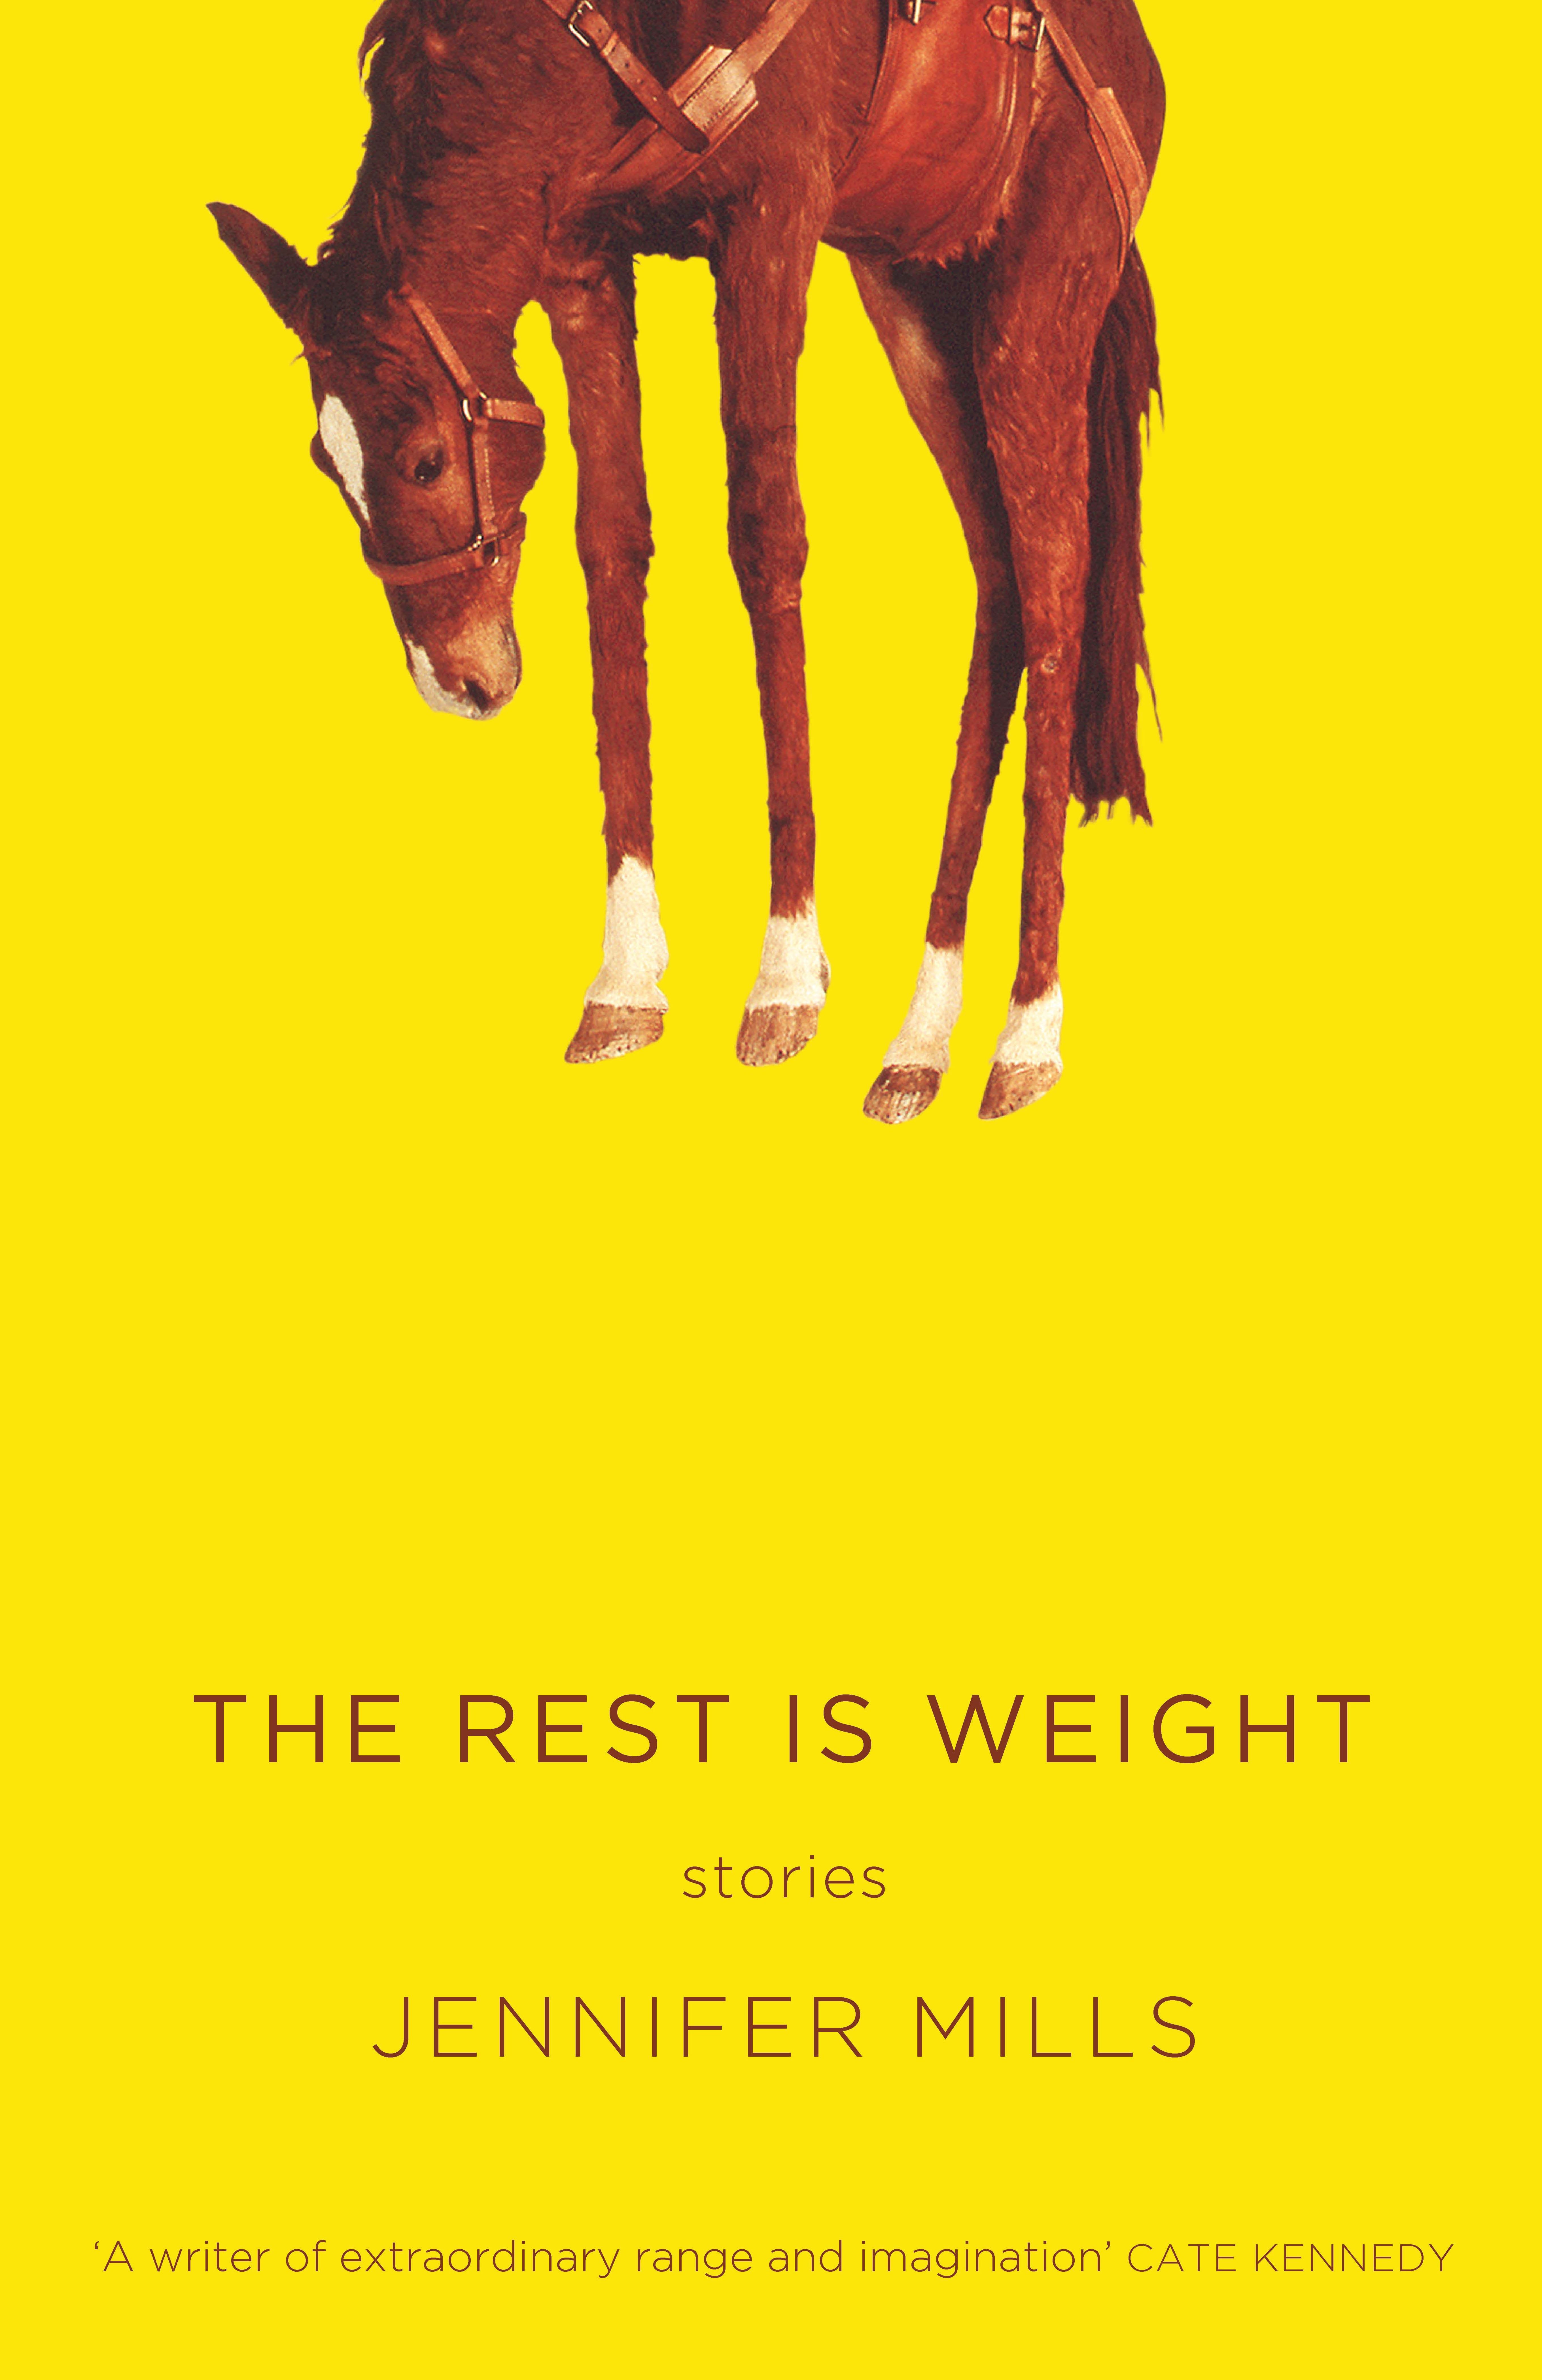 The Rest is Weight